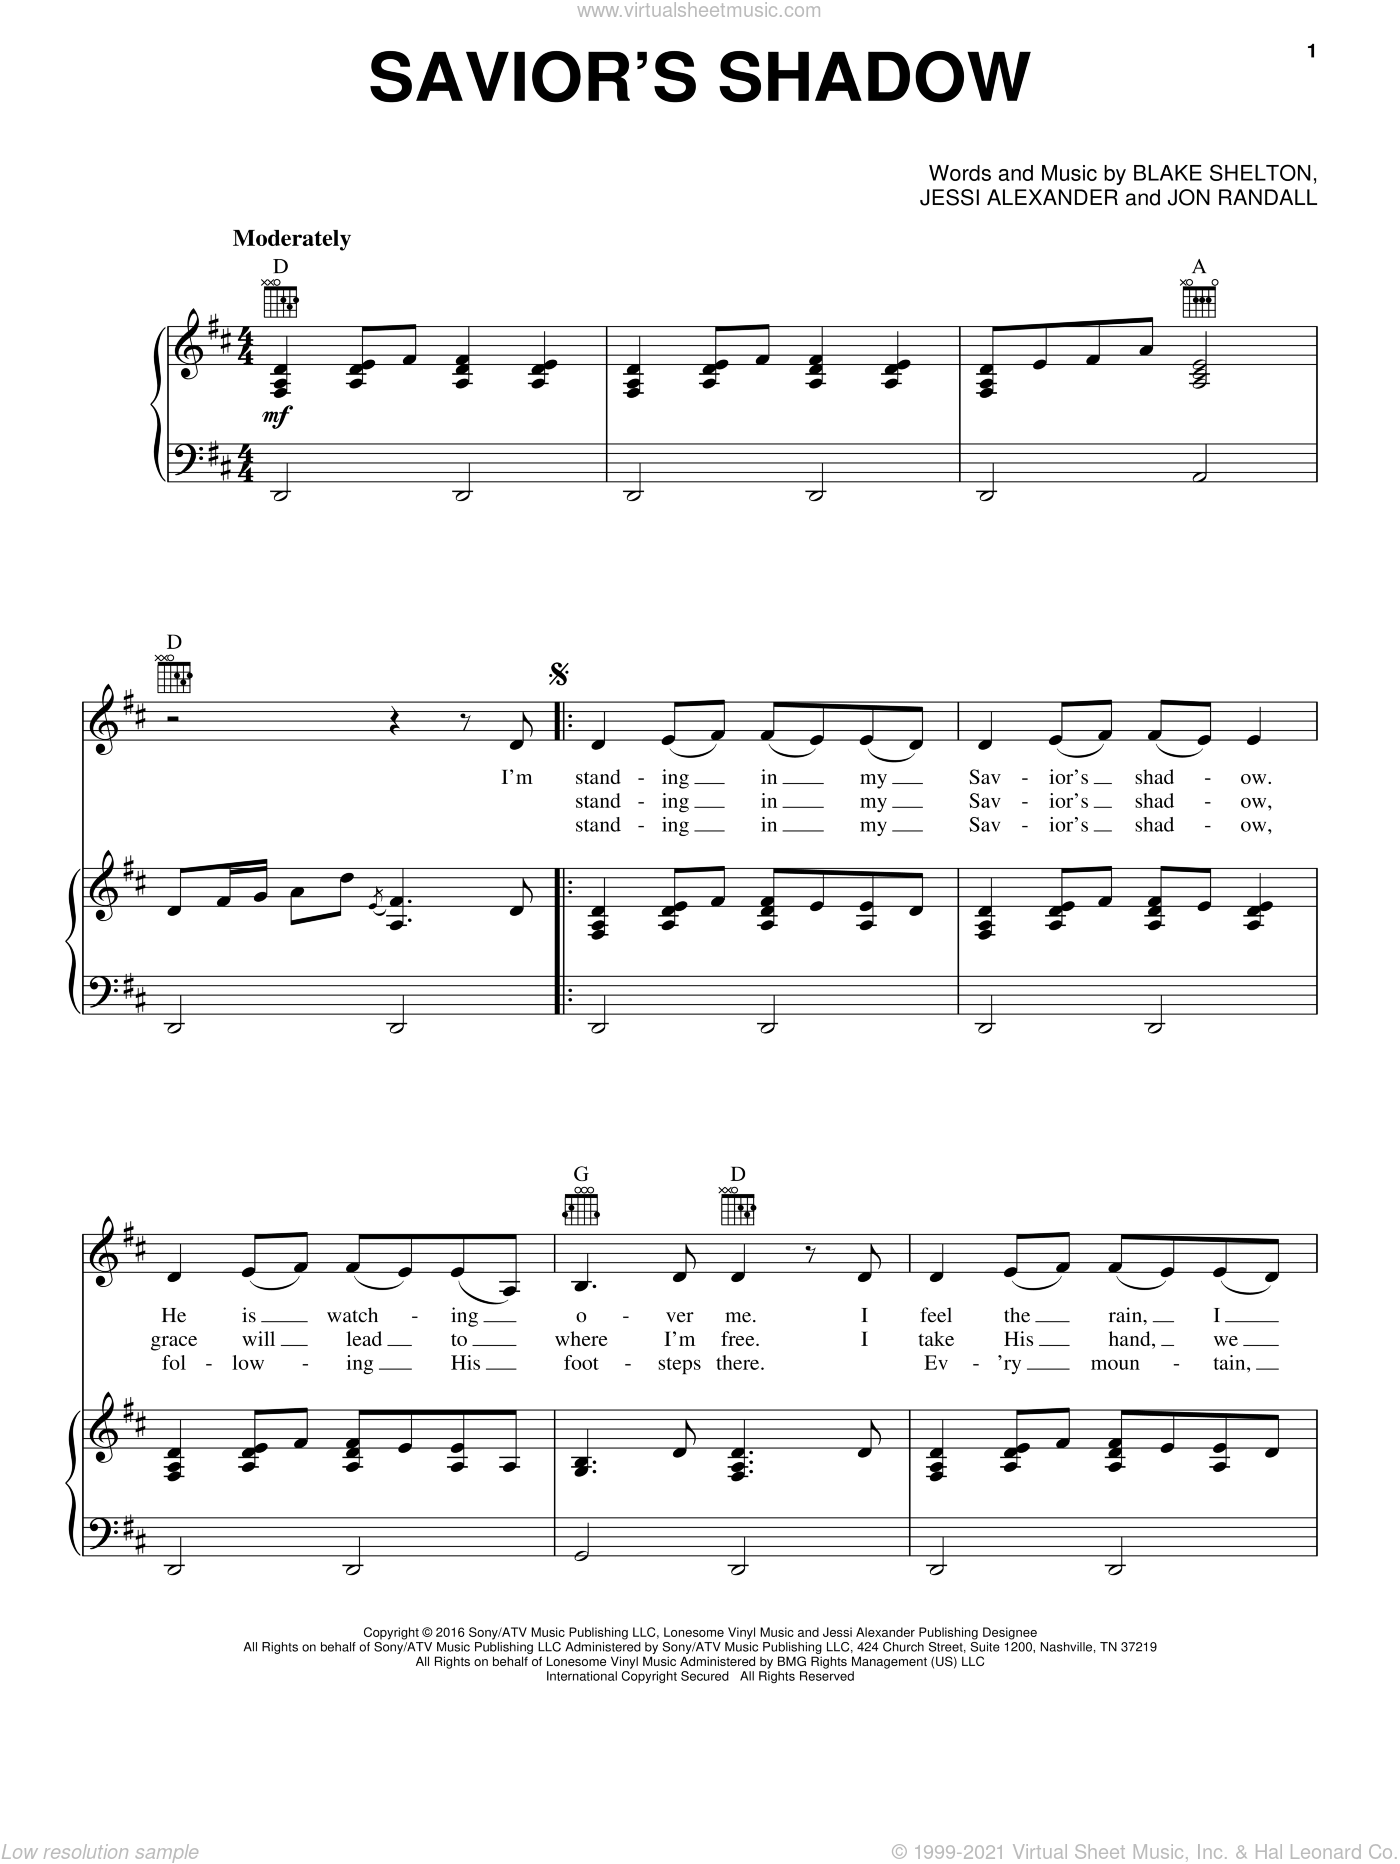 Savior's Shadow sheet music for voice, piano or guitar by Blake Shelton, Jessi Alexander and Jon Randall, intermediate skill level